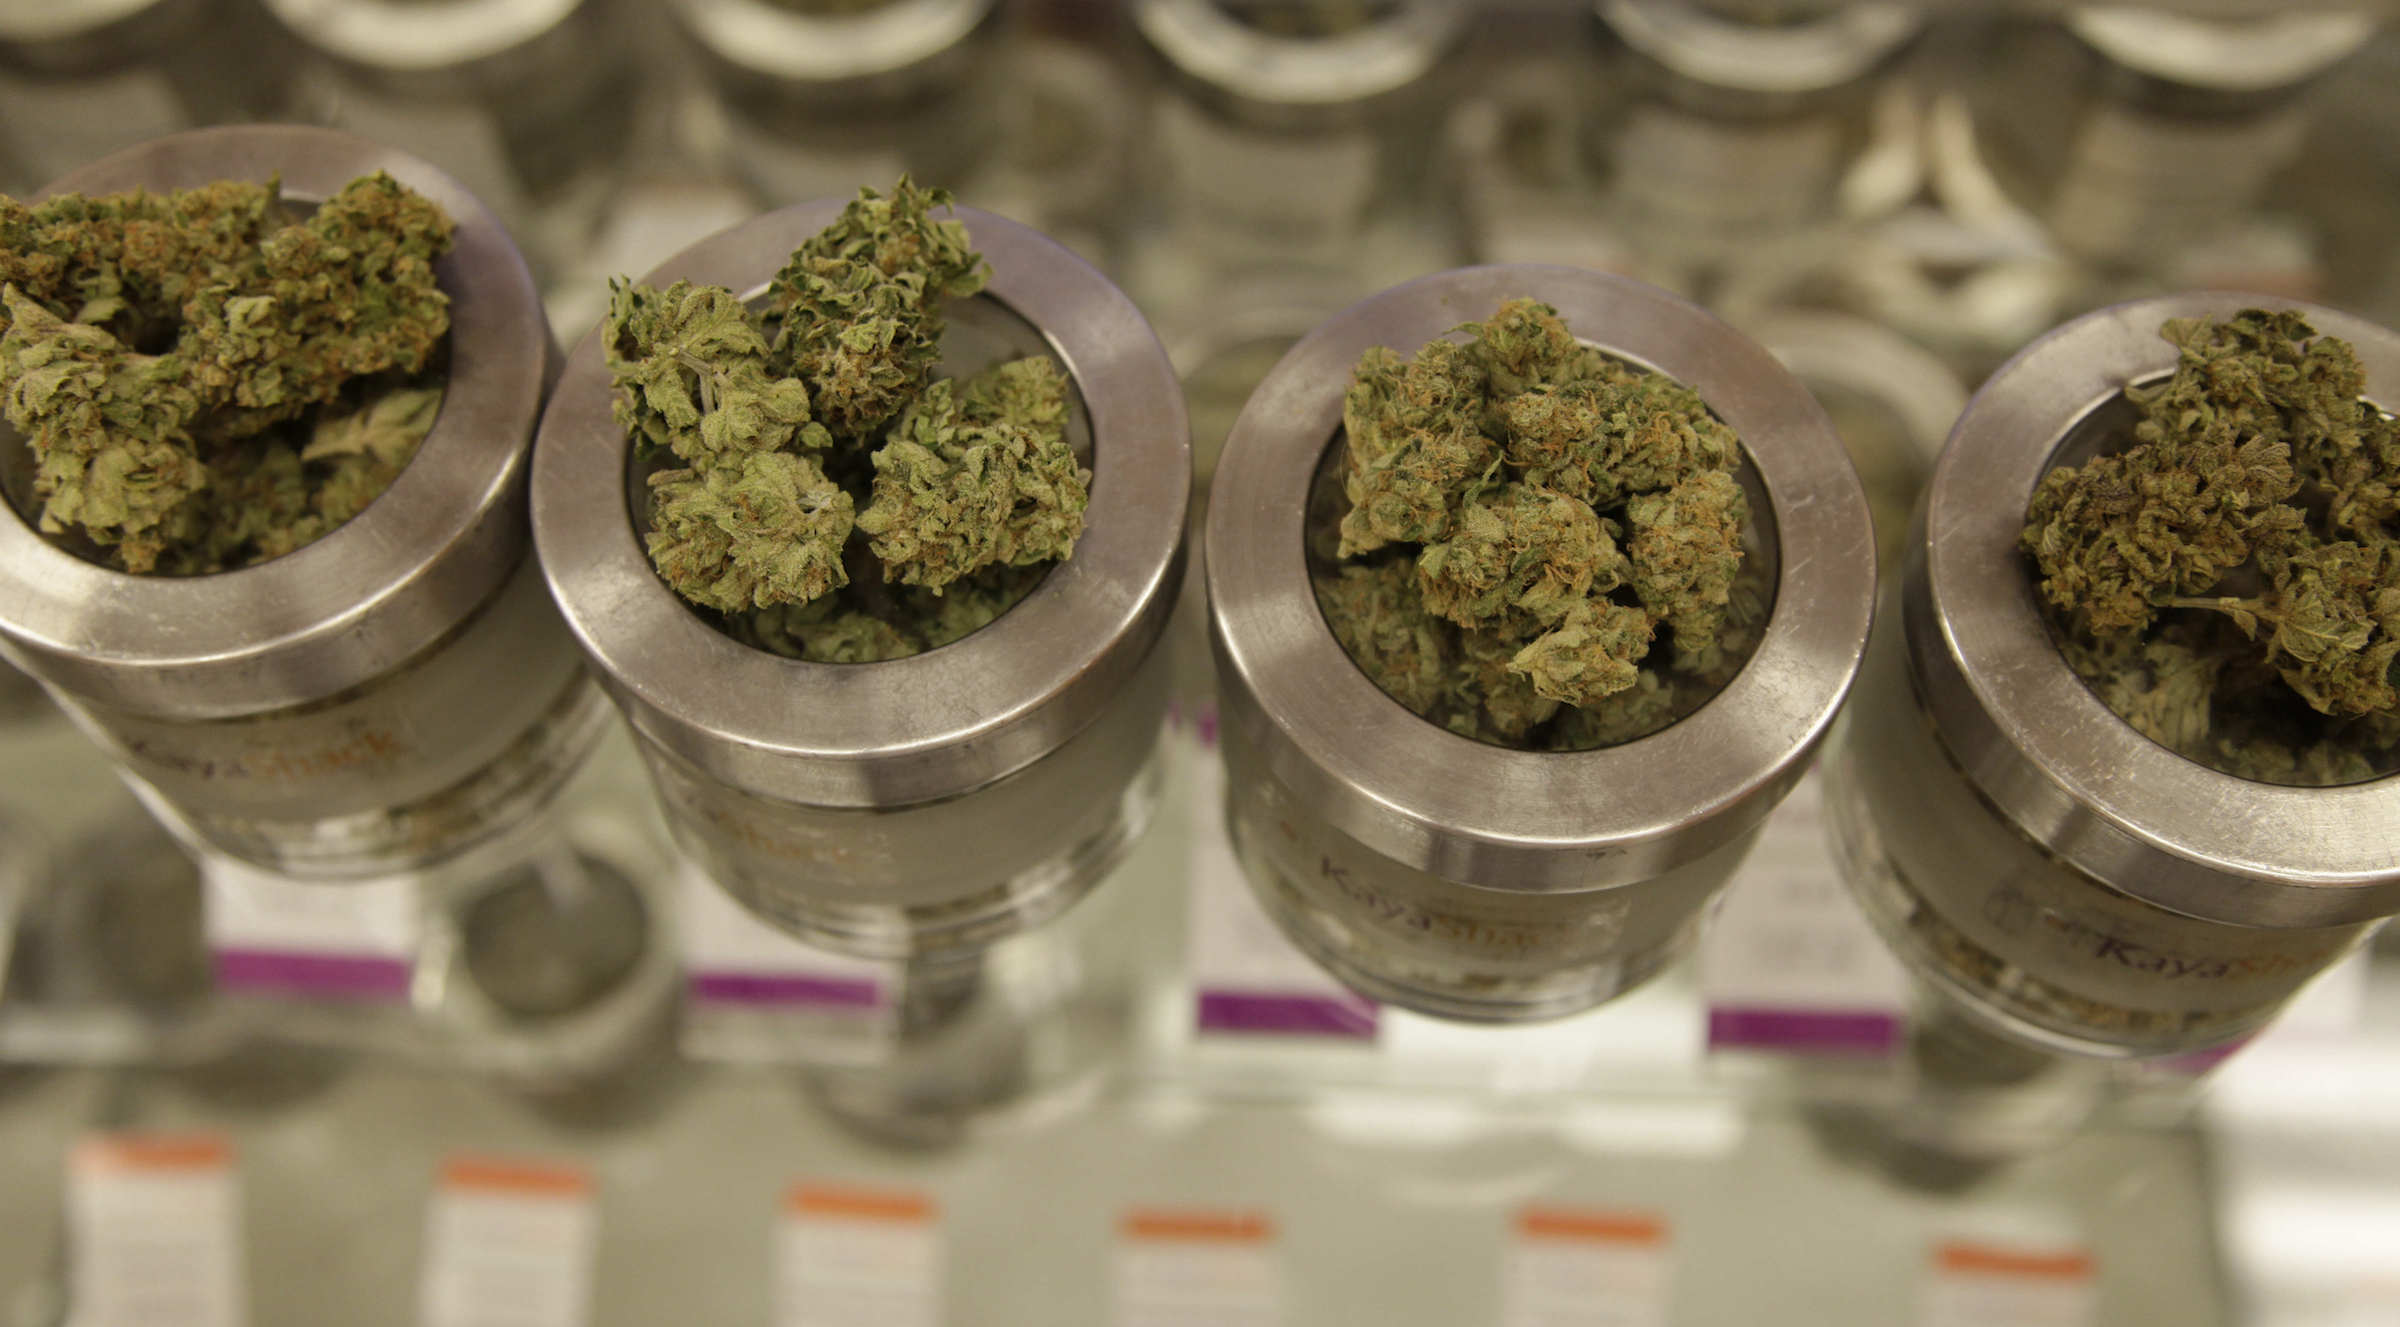 Marijuana canisters in Oregon